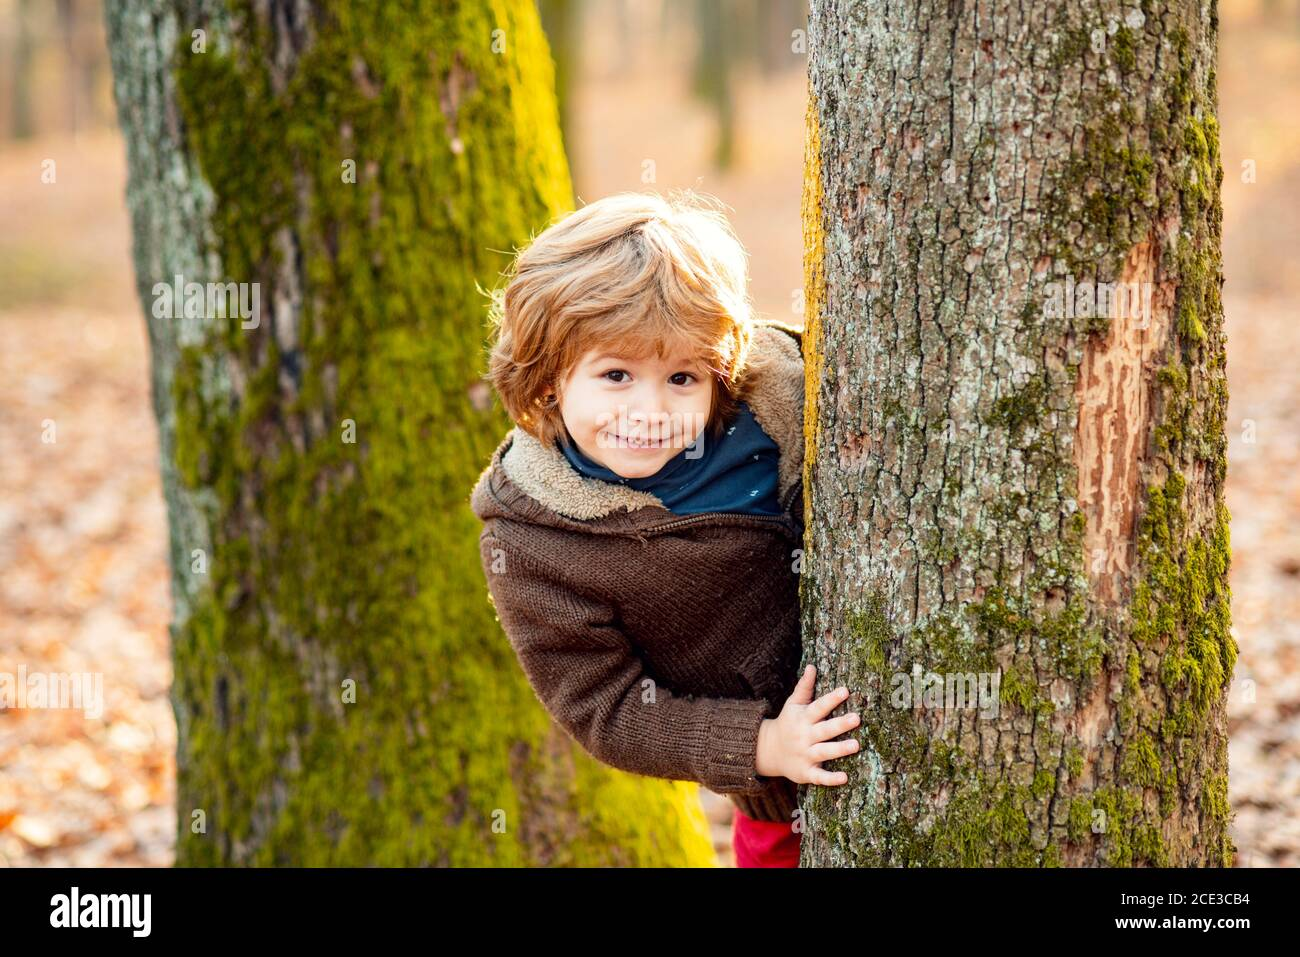 Outdoor autumn kids portrait. Cute little kid boy enjoying climbing on tree. Child in autumnal clothes learning to climb, having fun in forest or park Stock Photo